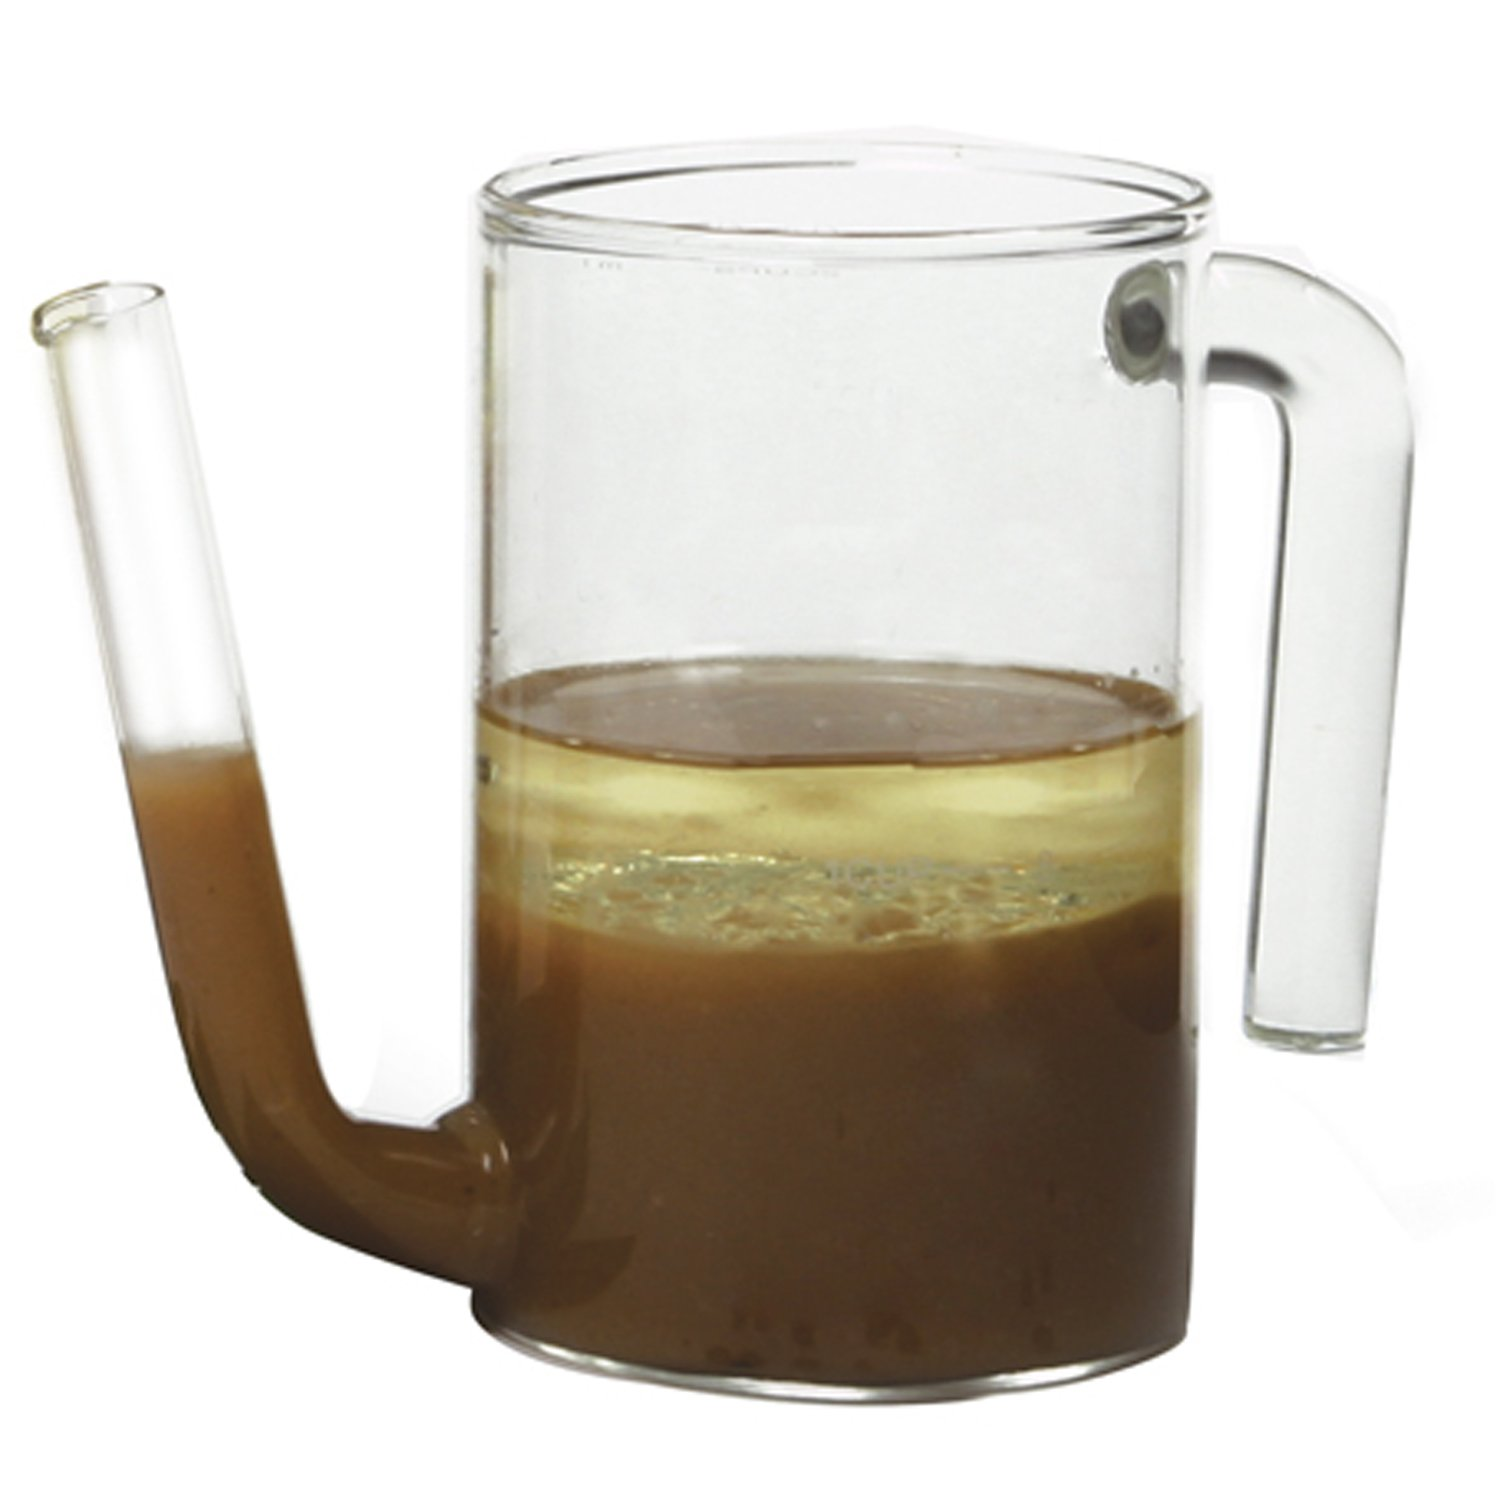 Norpro 2-Cup Glass Gravy Sauce Stock Soup Fat Grease Separator - Dishwasher Safe